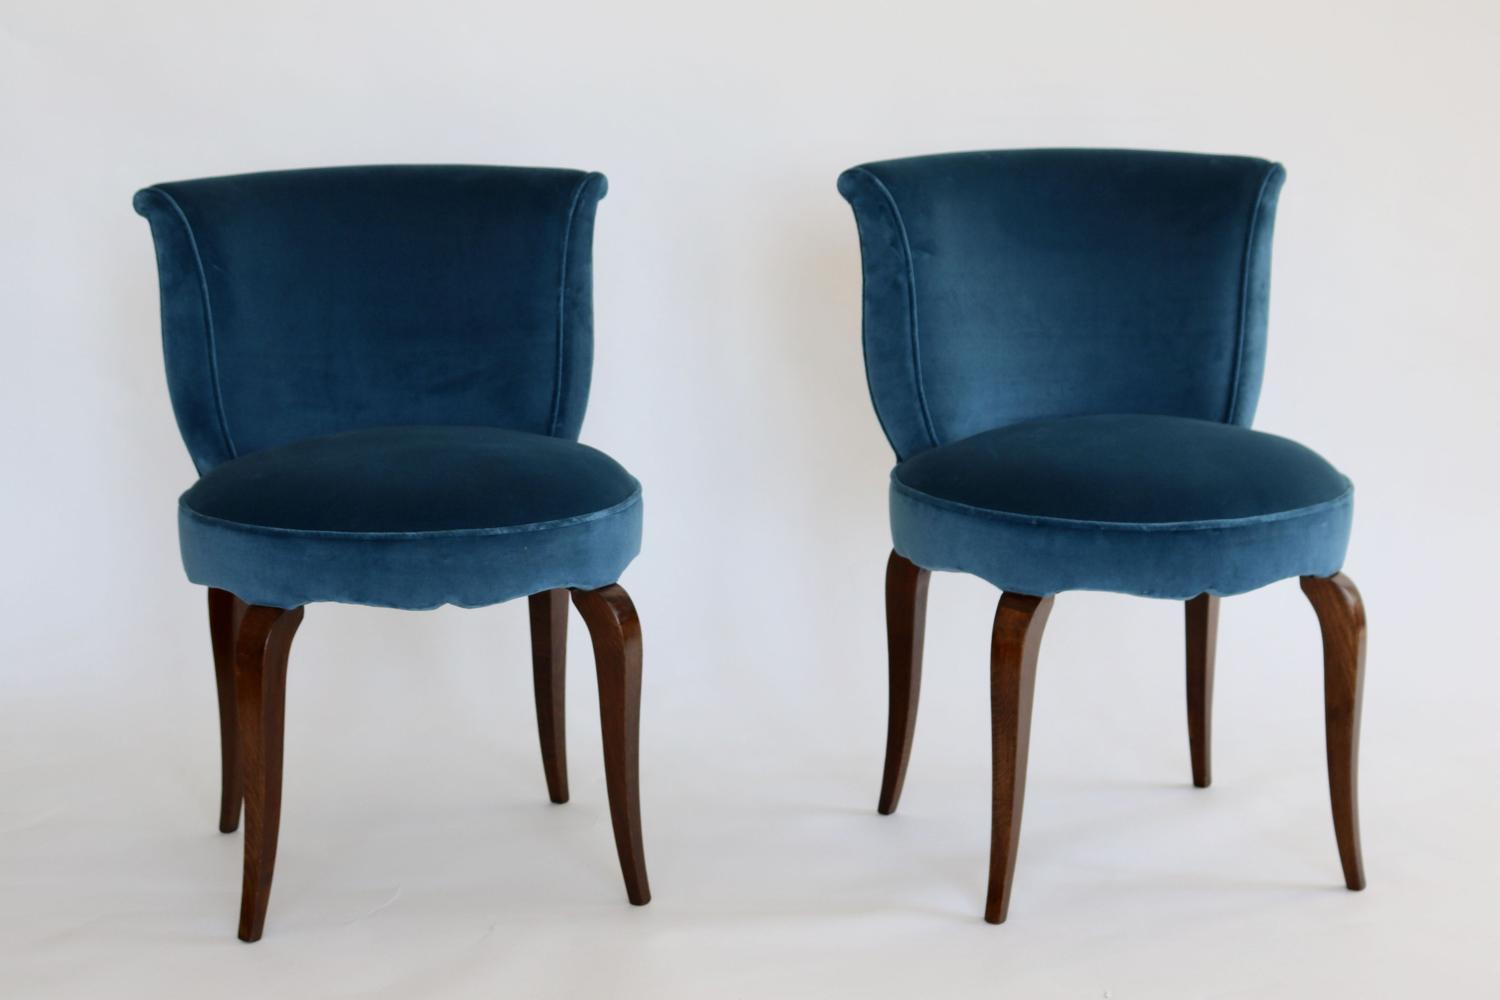 Pair of French Art Deco Chairs